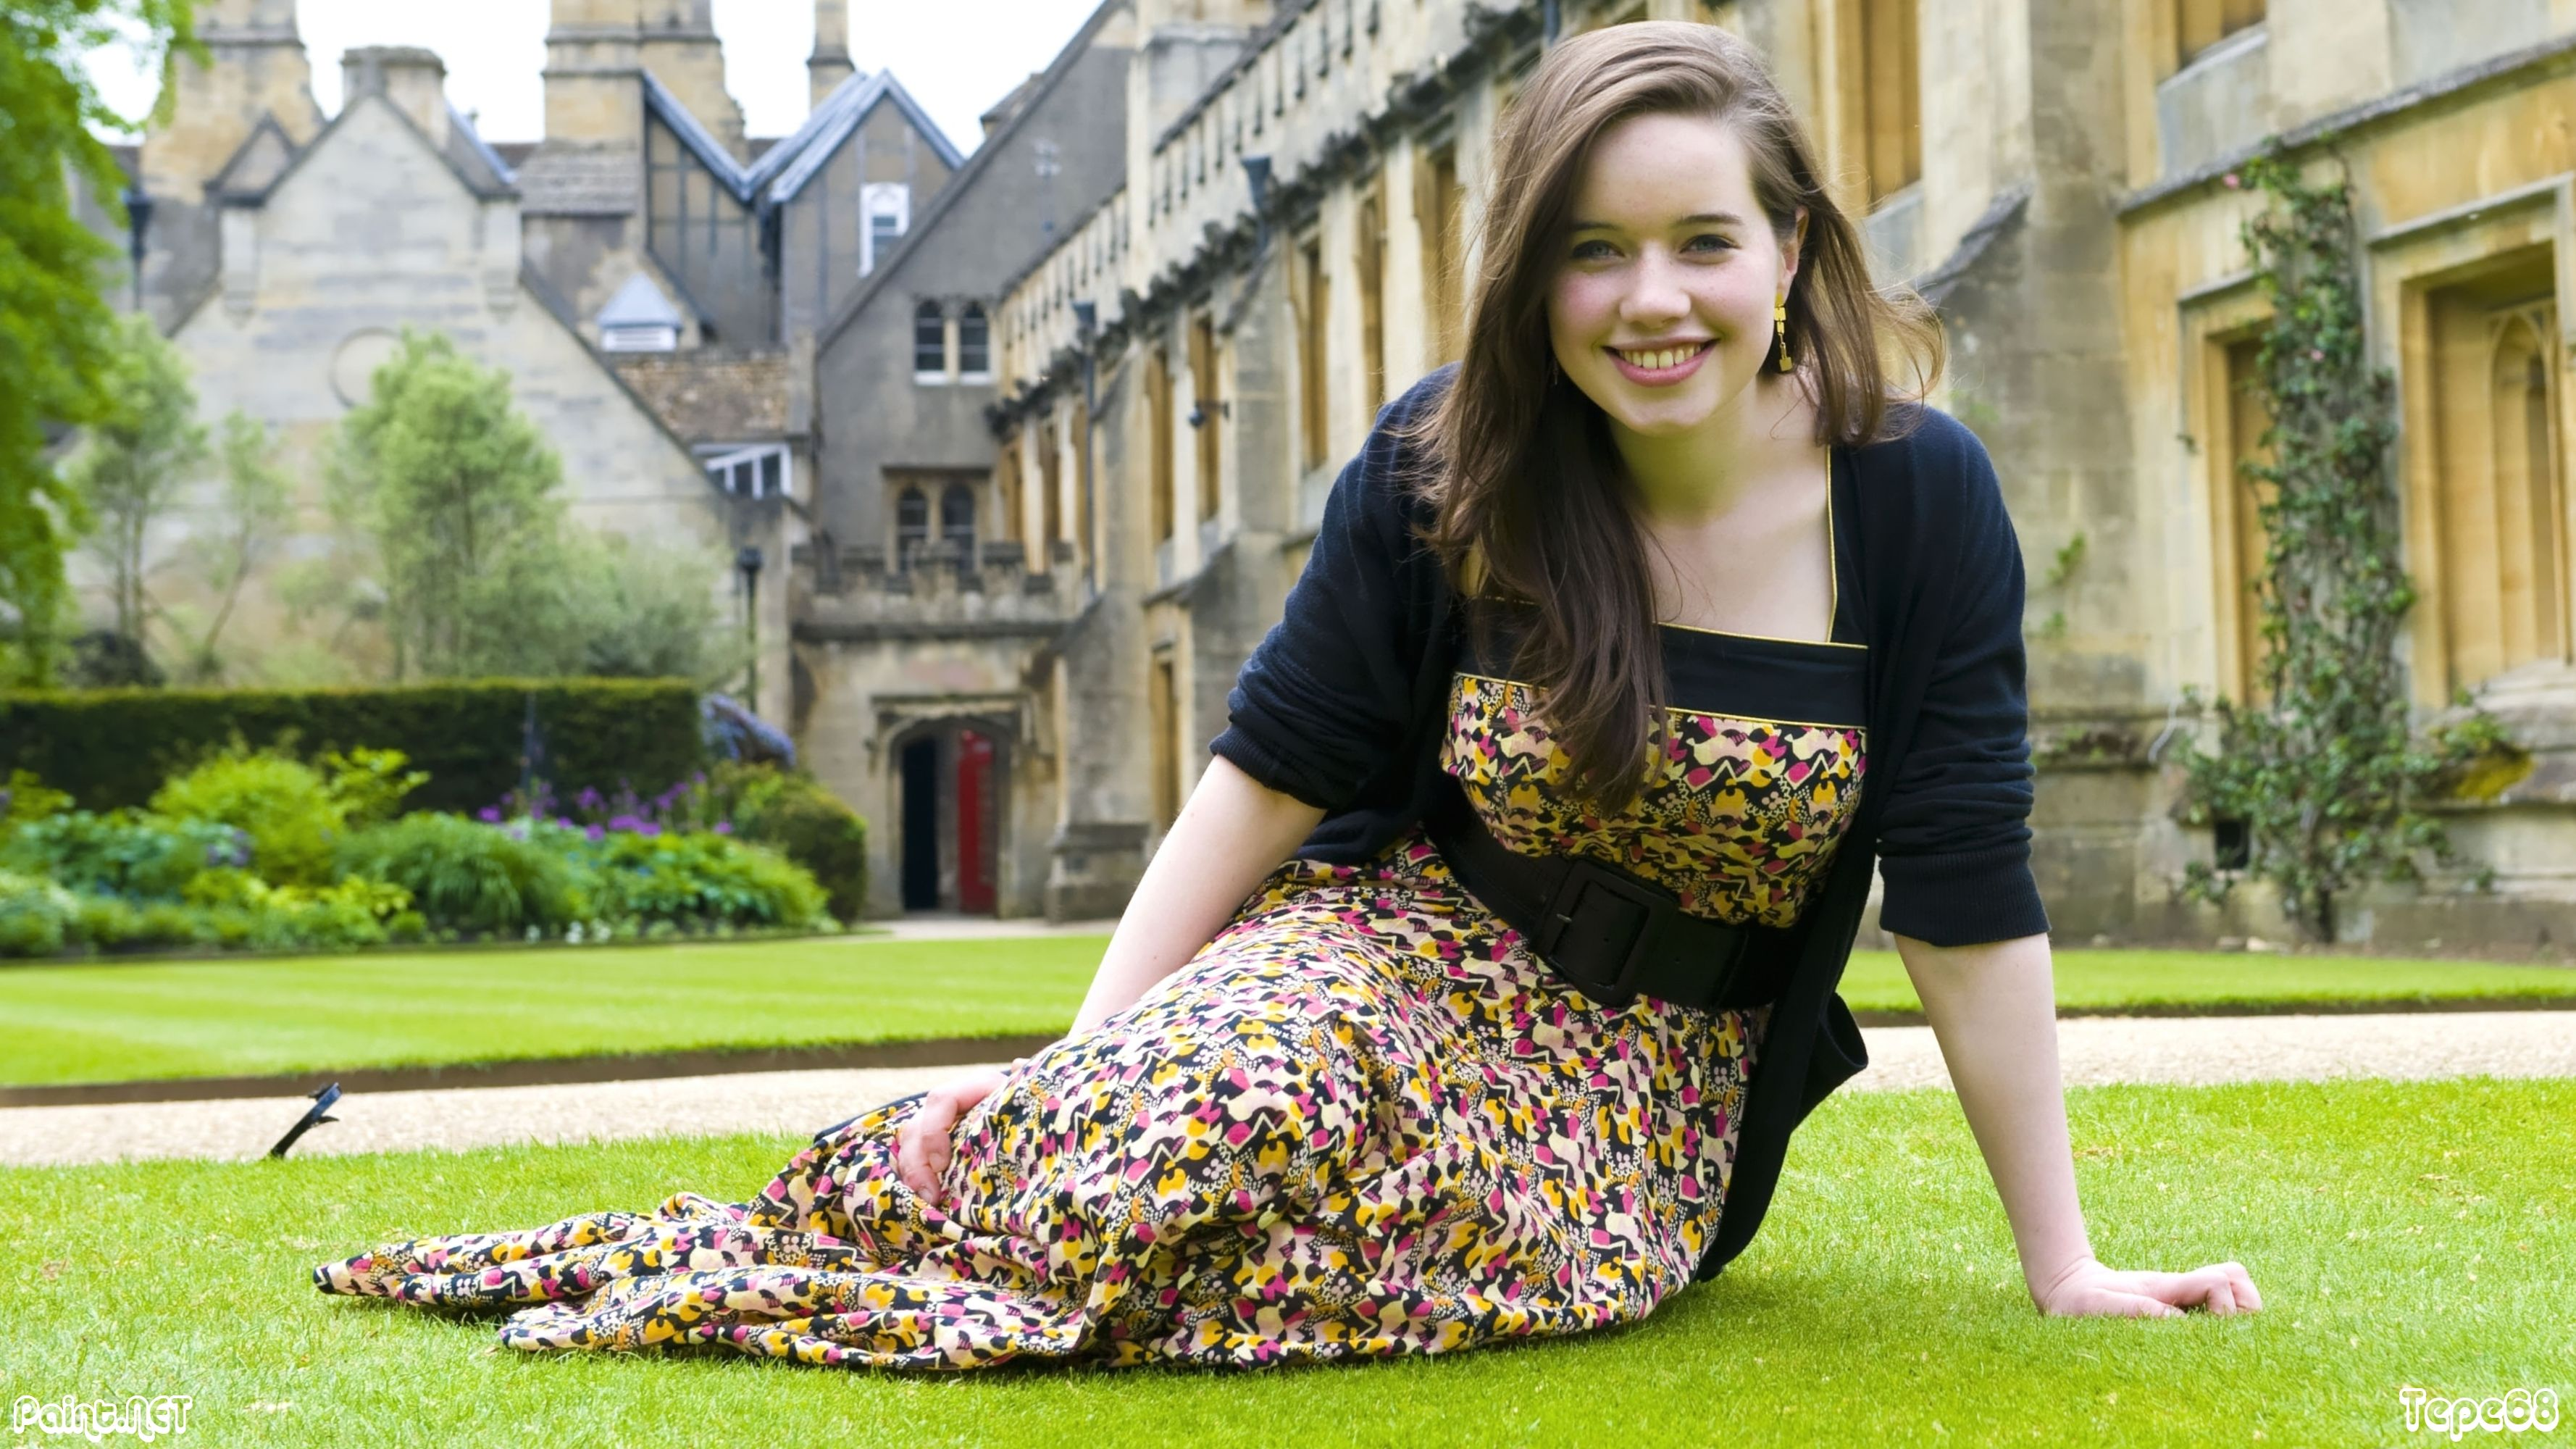 who is dating anna popplewell